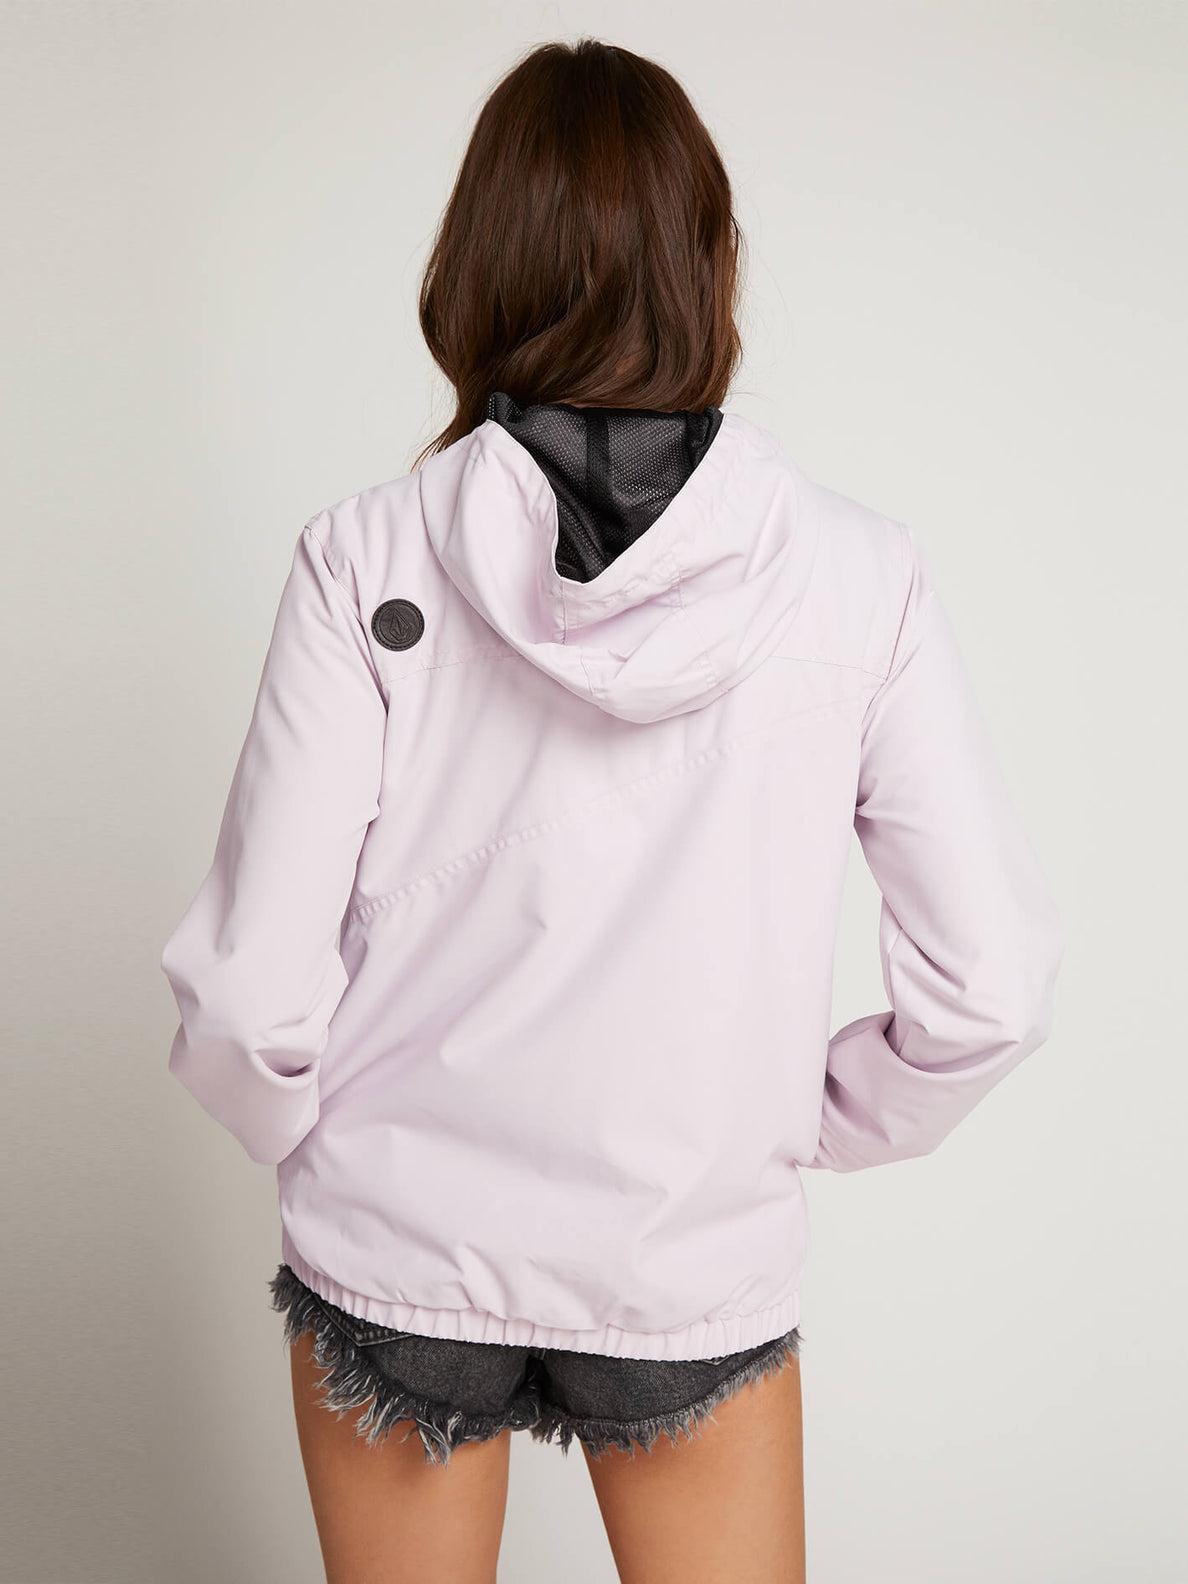 Enemy Stone Jacket In Light Purple, Back View